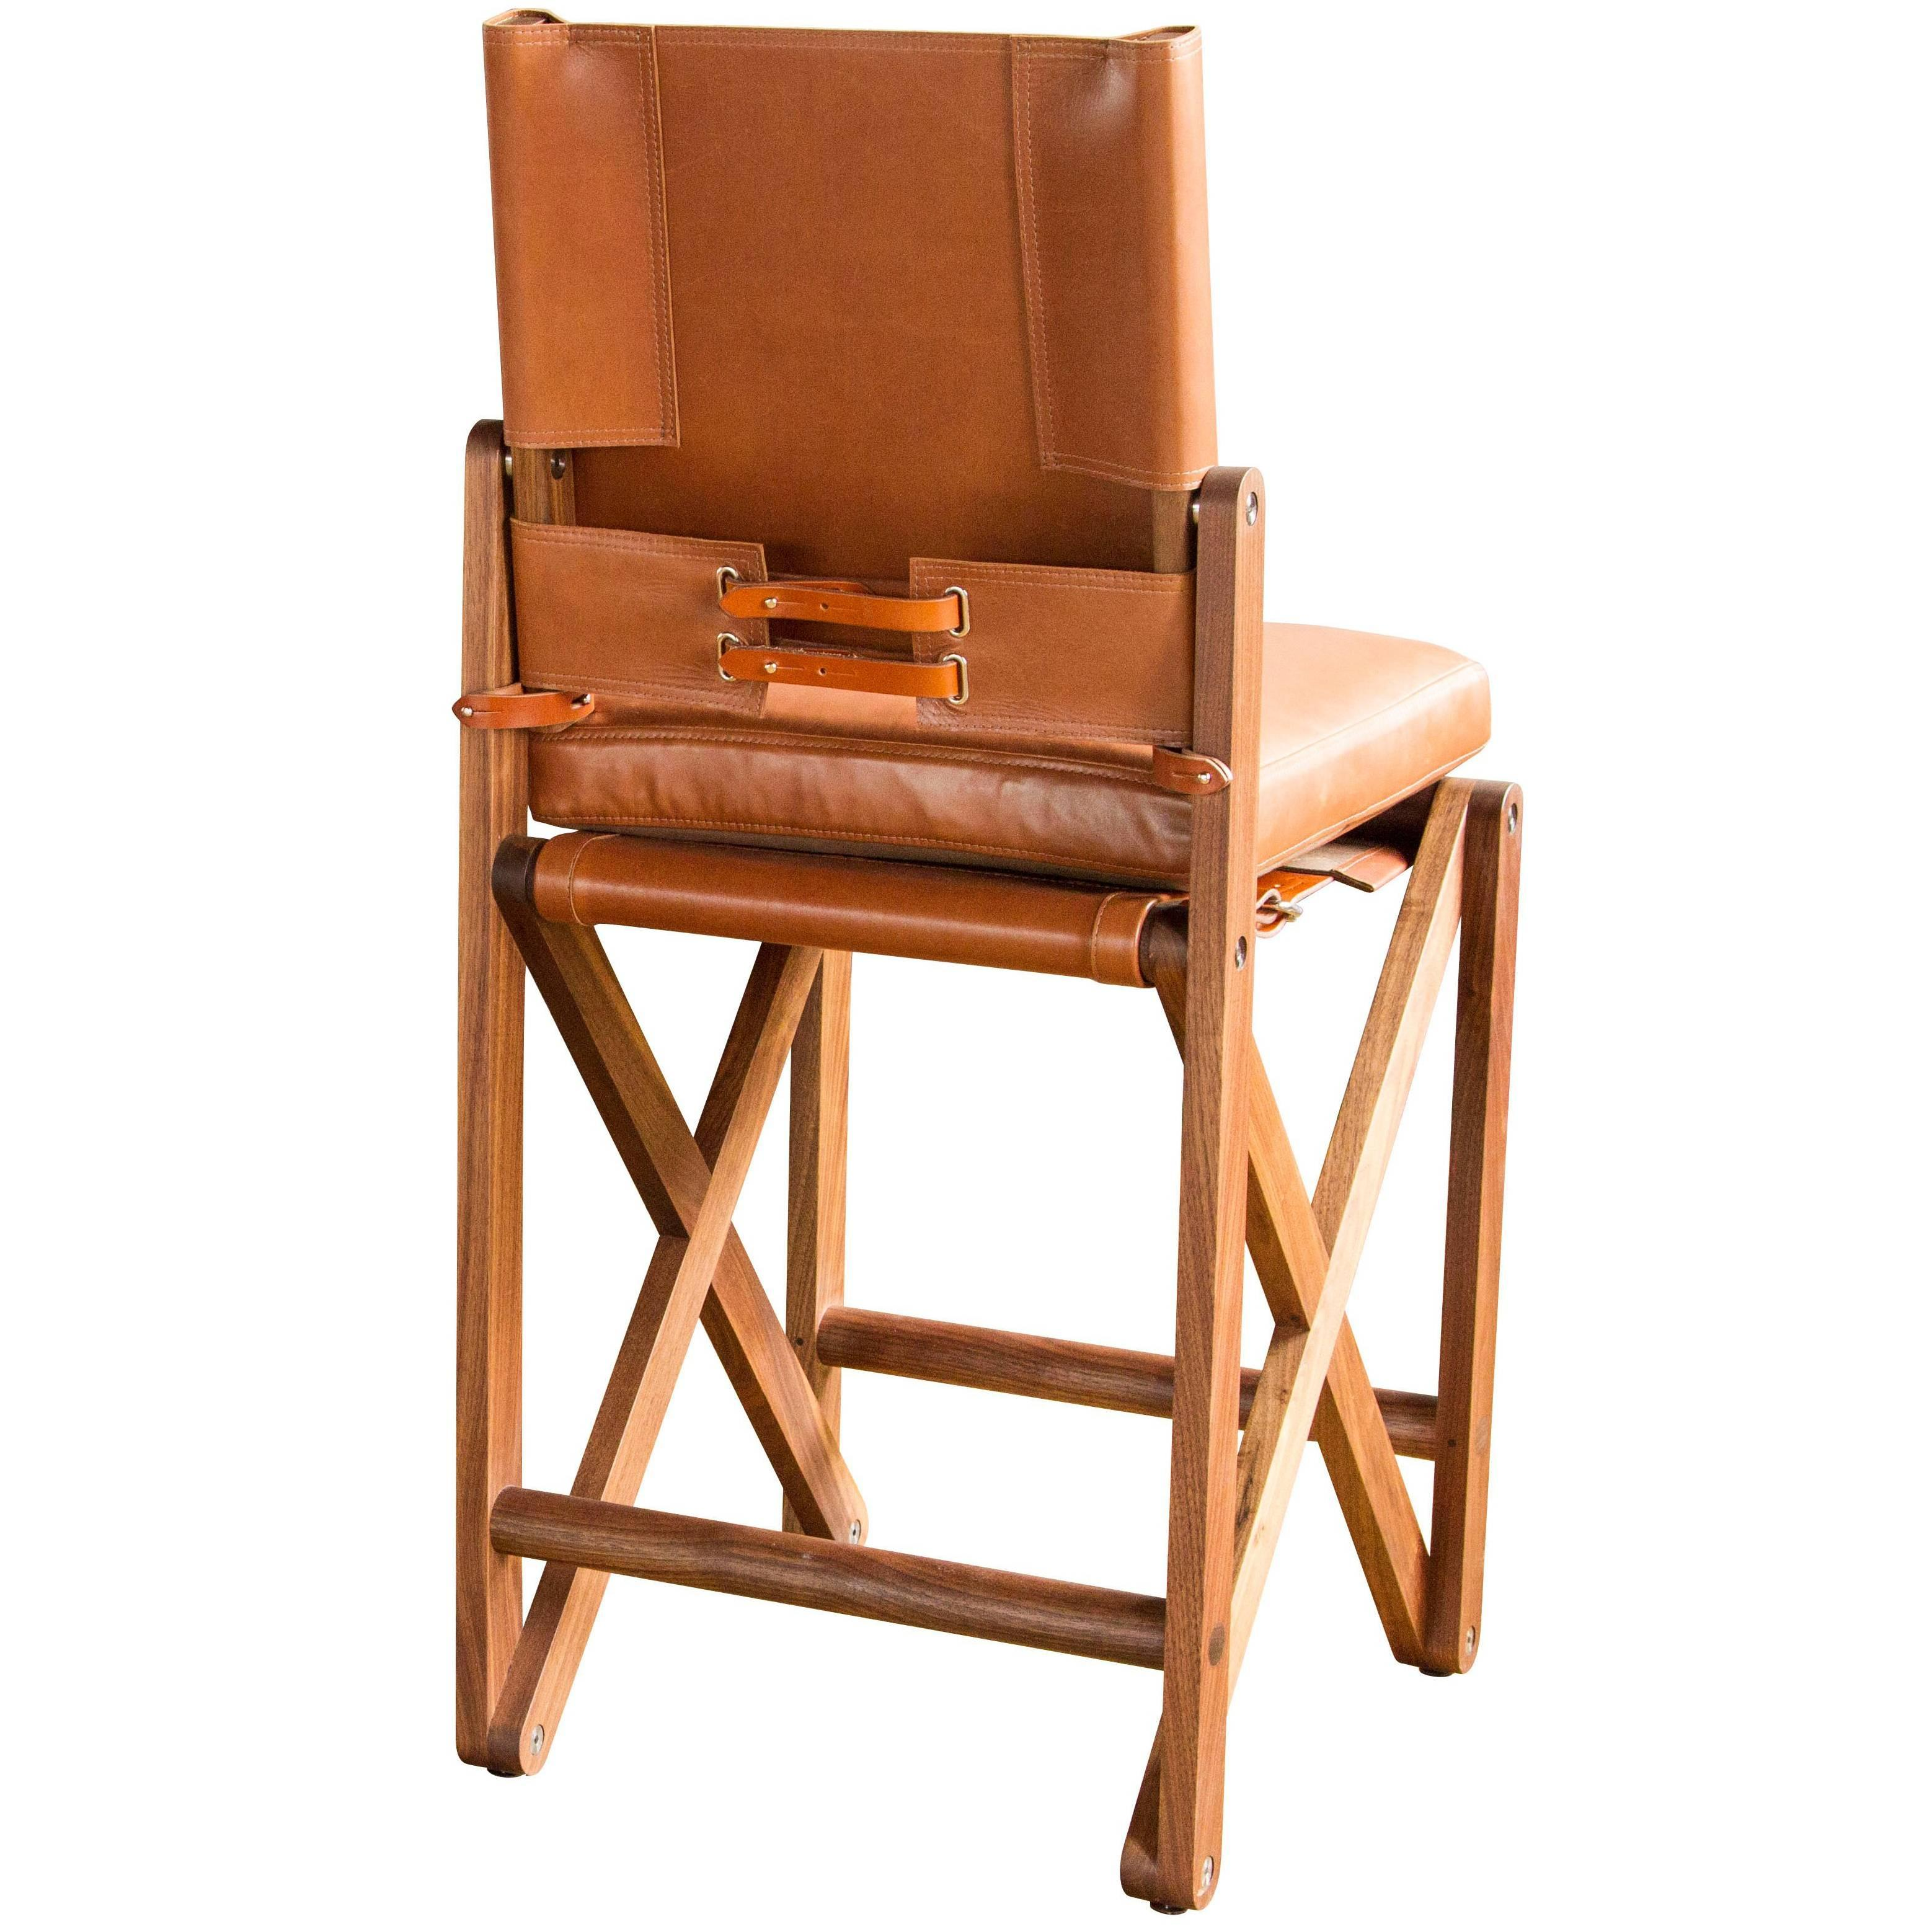 Maclaren Armless Counter And Bar Chair Or Stool In Tan Leather  Upholstery For Sale Tan Leather Bar Stools37